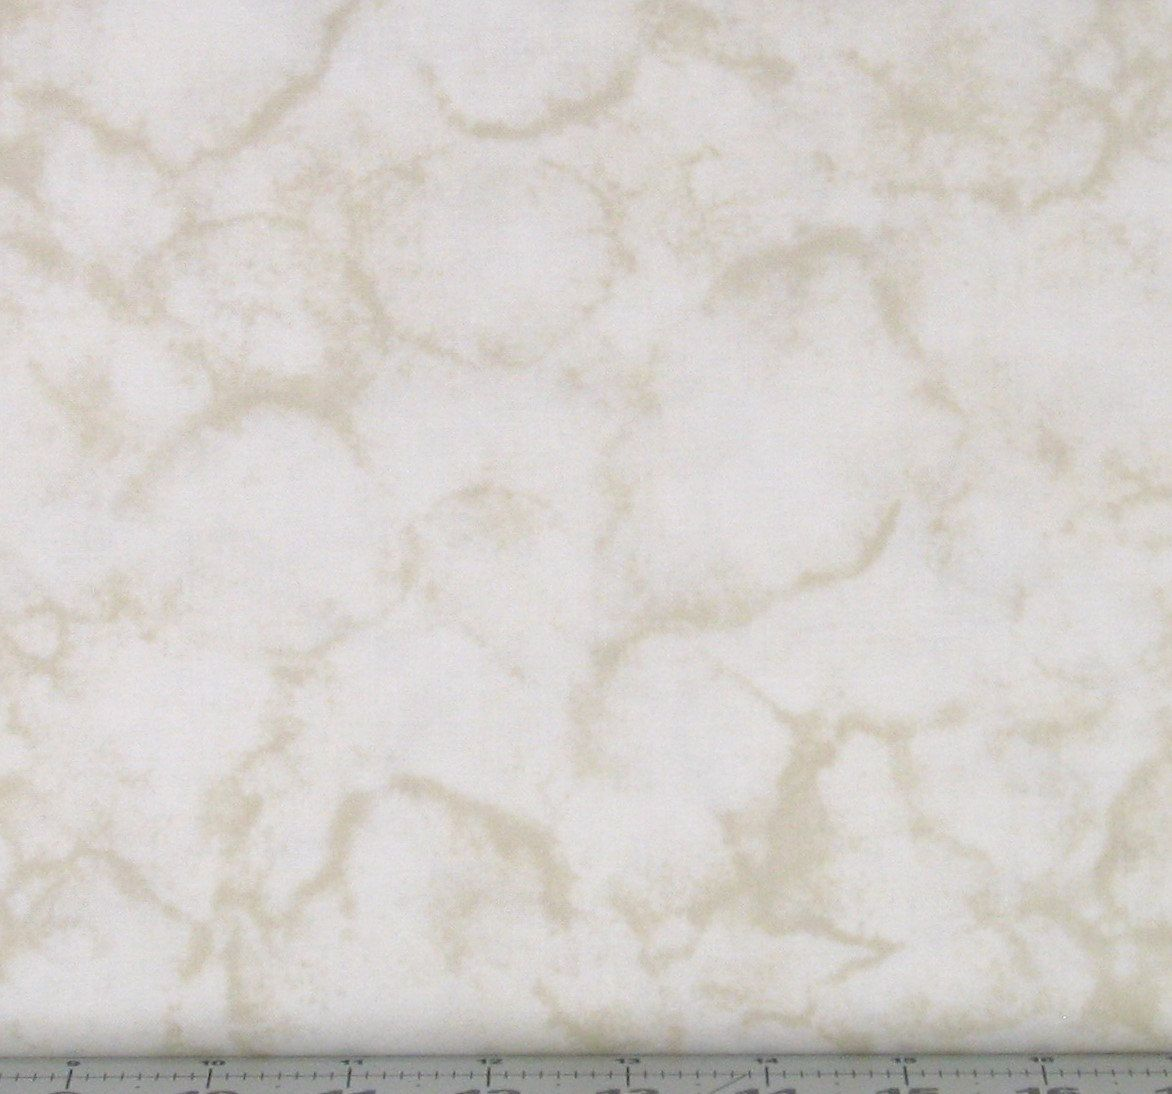 Off White Tone on Tone Mottled Cotton Quilt Fabric for Sale, Thyme ... : white tone on tone quilt fabric - Adamdwight.com